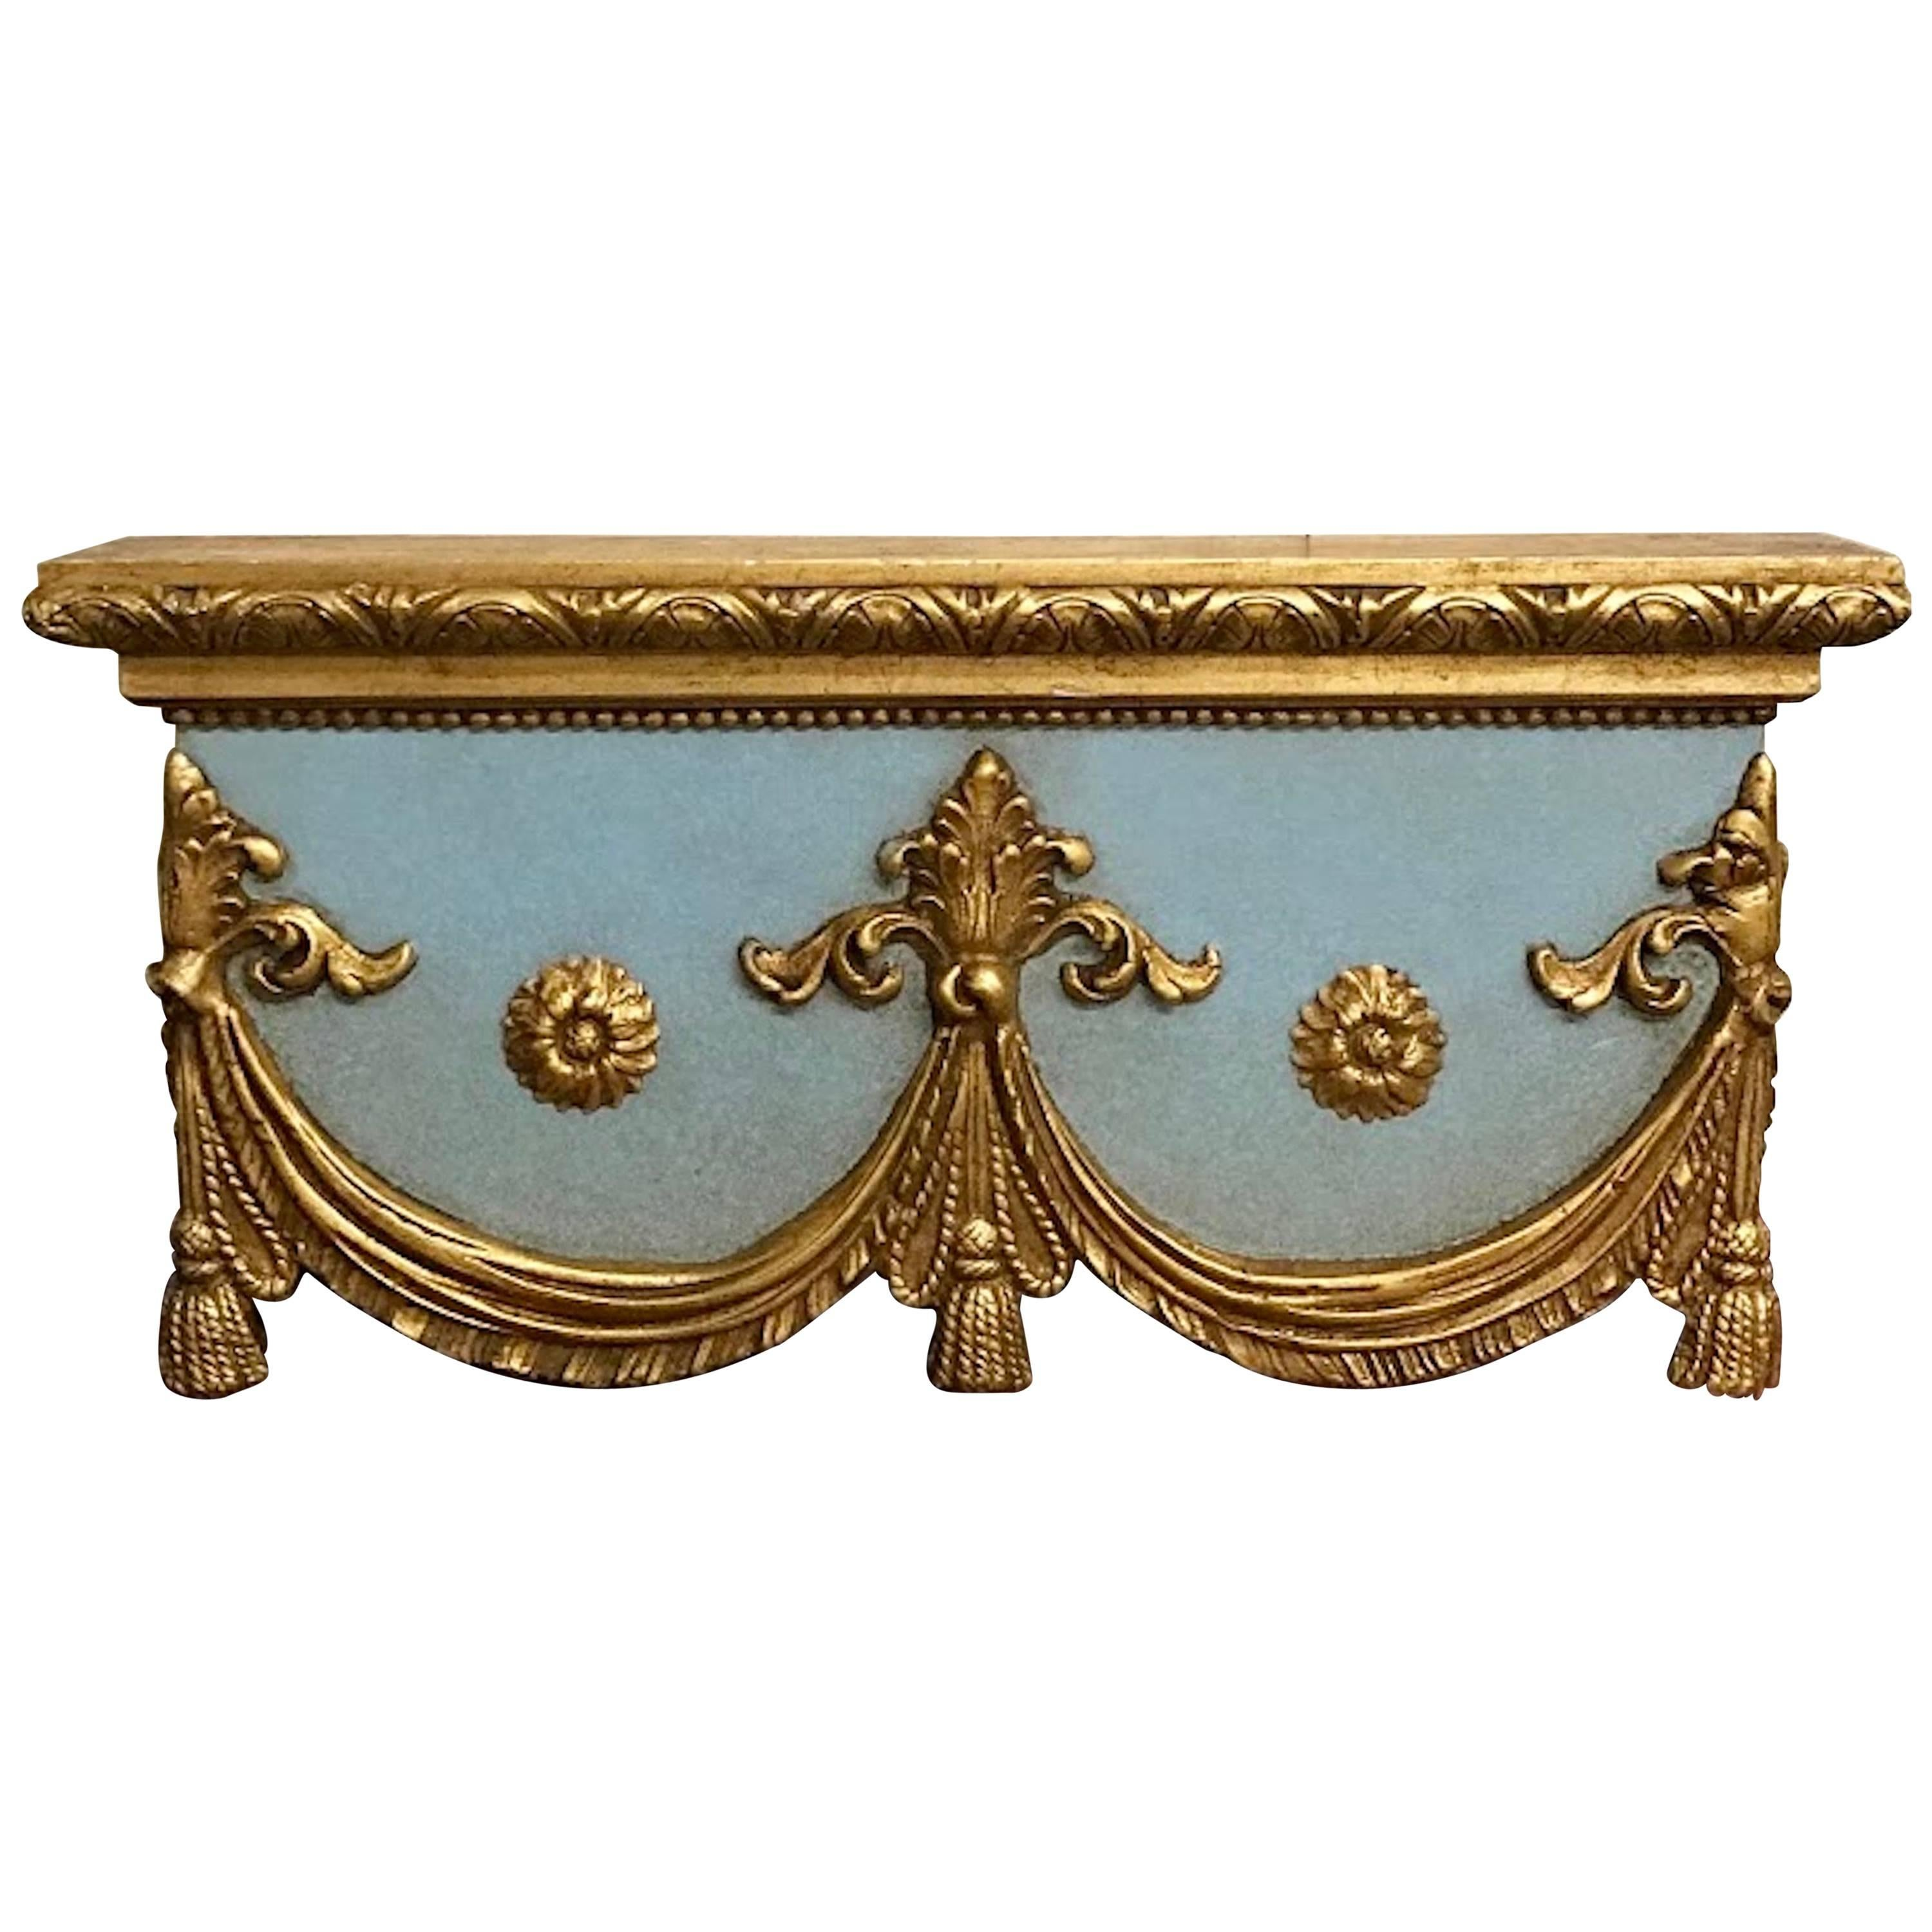 Superieur Italian Carved, Robinu0027s Egg Blue And Gilt Neoclassical Window Cornice For  Sale